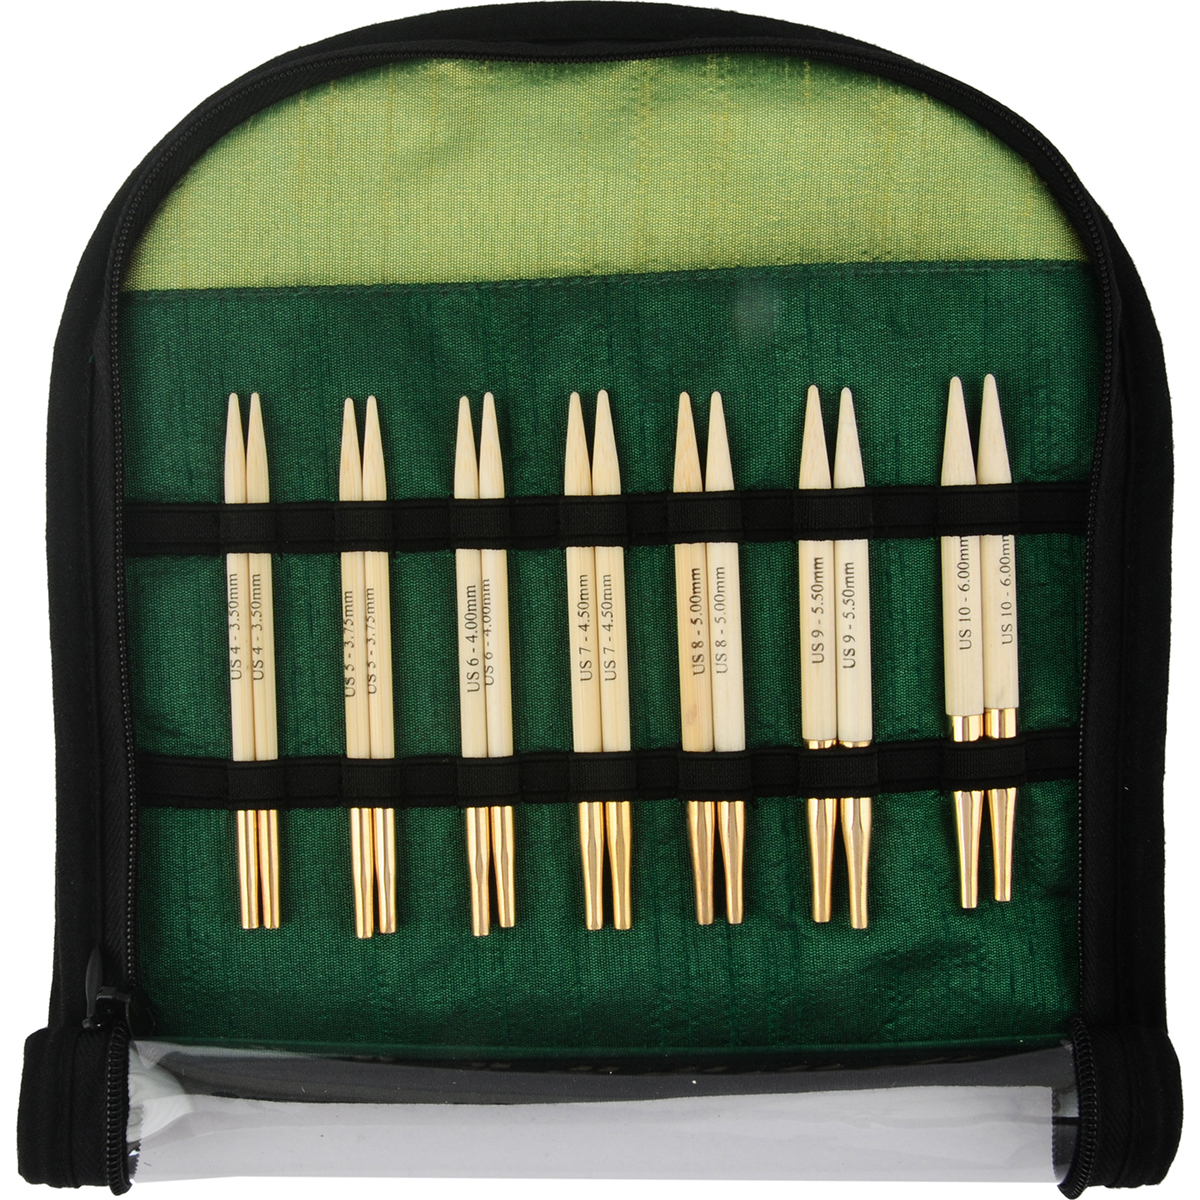 Knitter's Pride Bamboo Special Interchangeable Needles Set